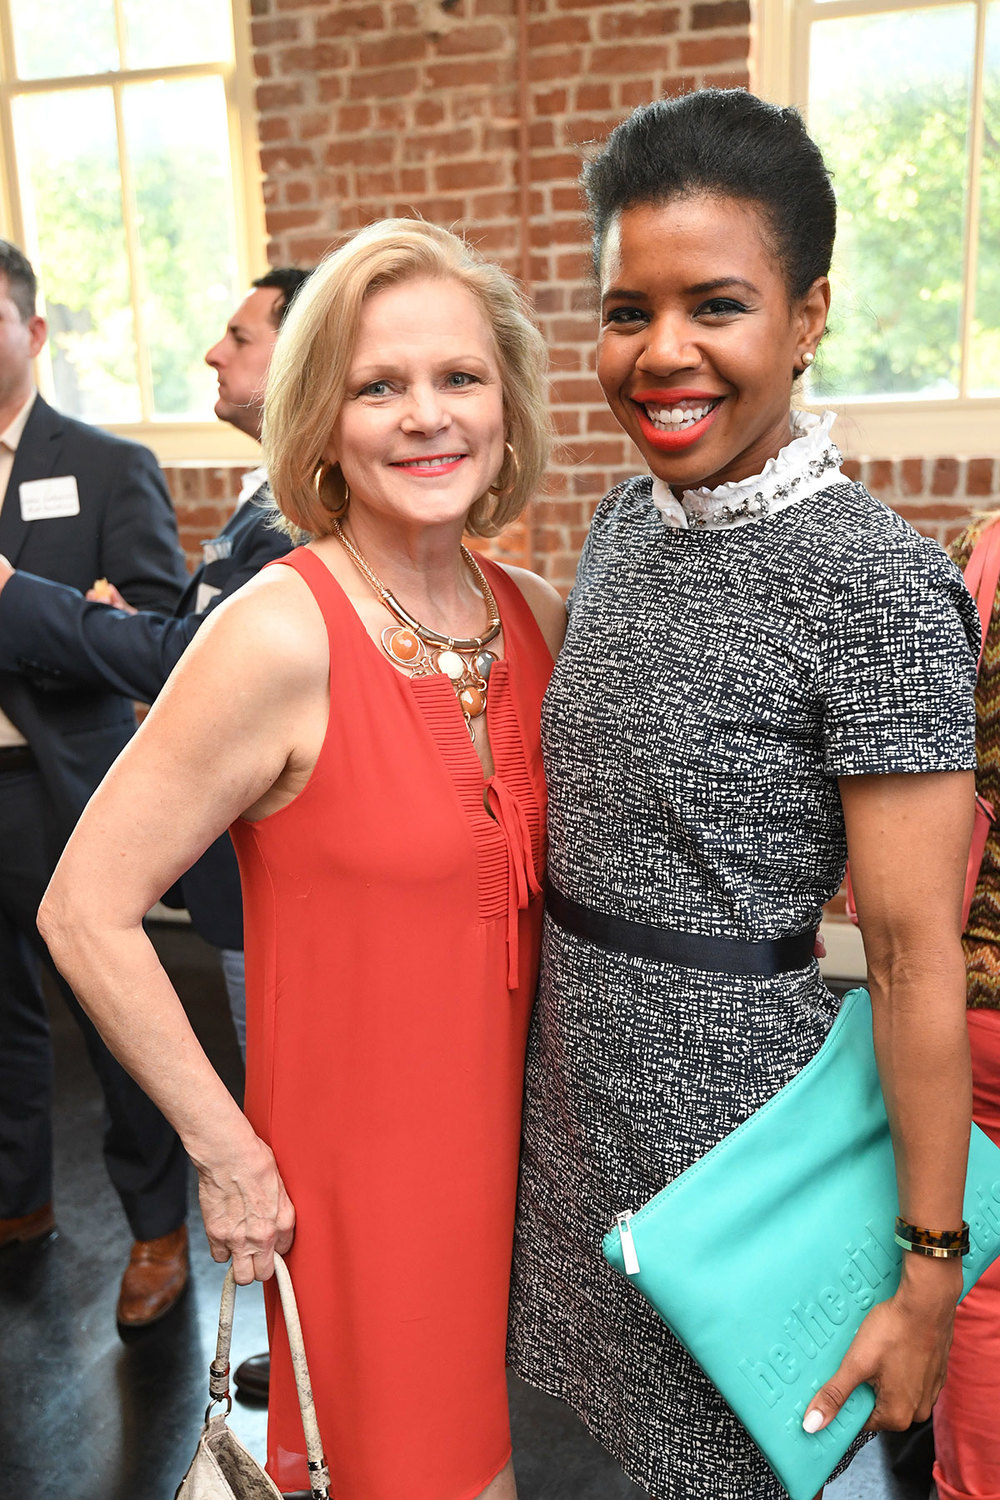 Arlene Harper-Veith and PH Board member Claire Cormier Thielke /  photo by Daniel Ortiz